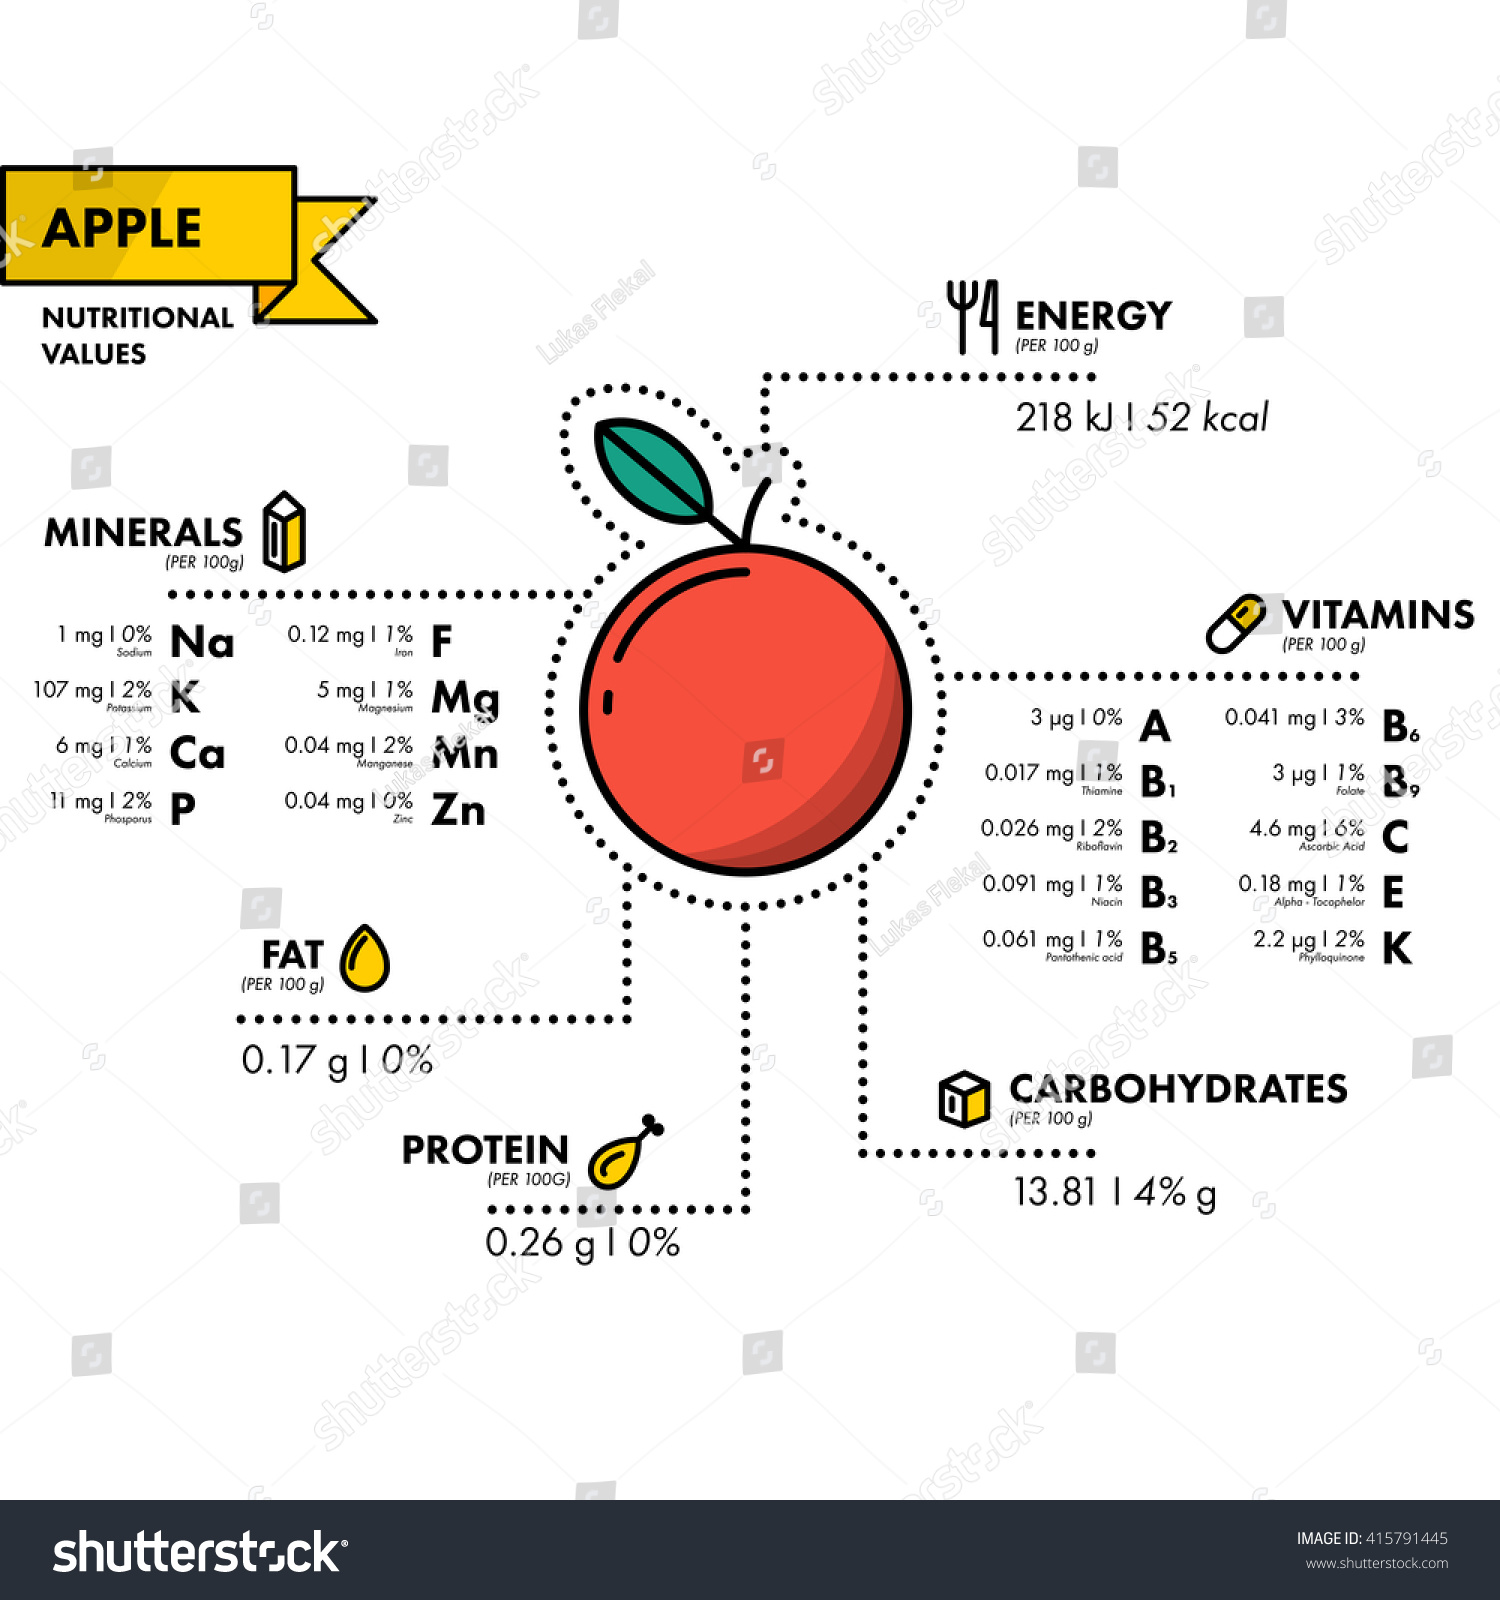 Apple Nutritional Information Healthy Diet Simple Stock Vector pertaining to Healthy Diet Information